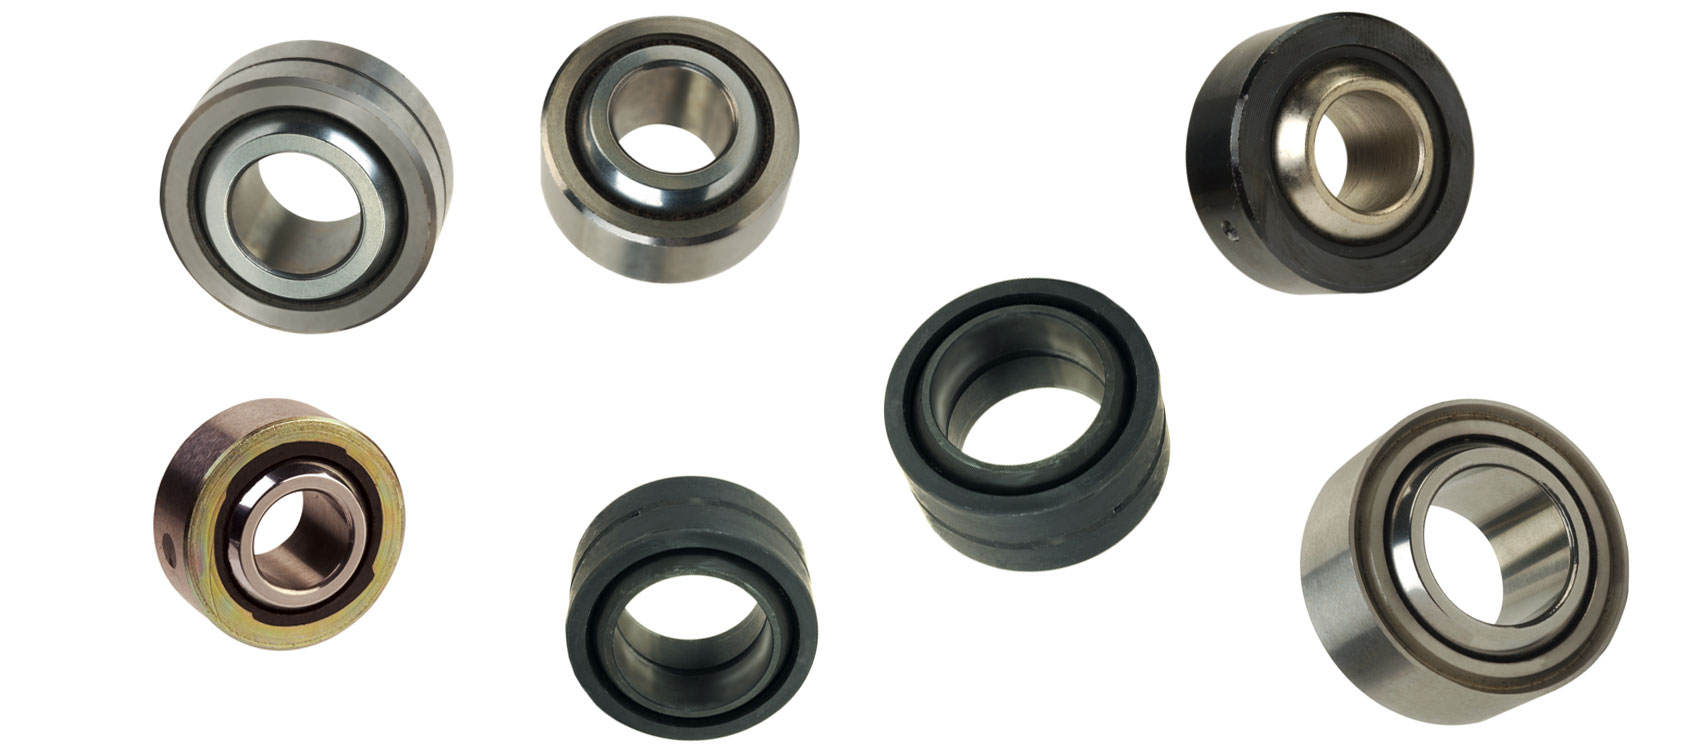 Cablecraft Spherical Bearings